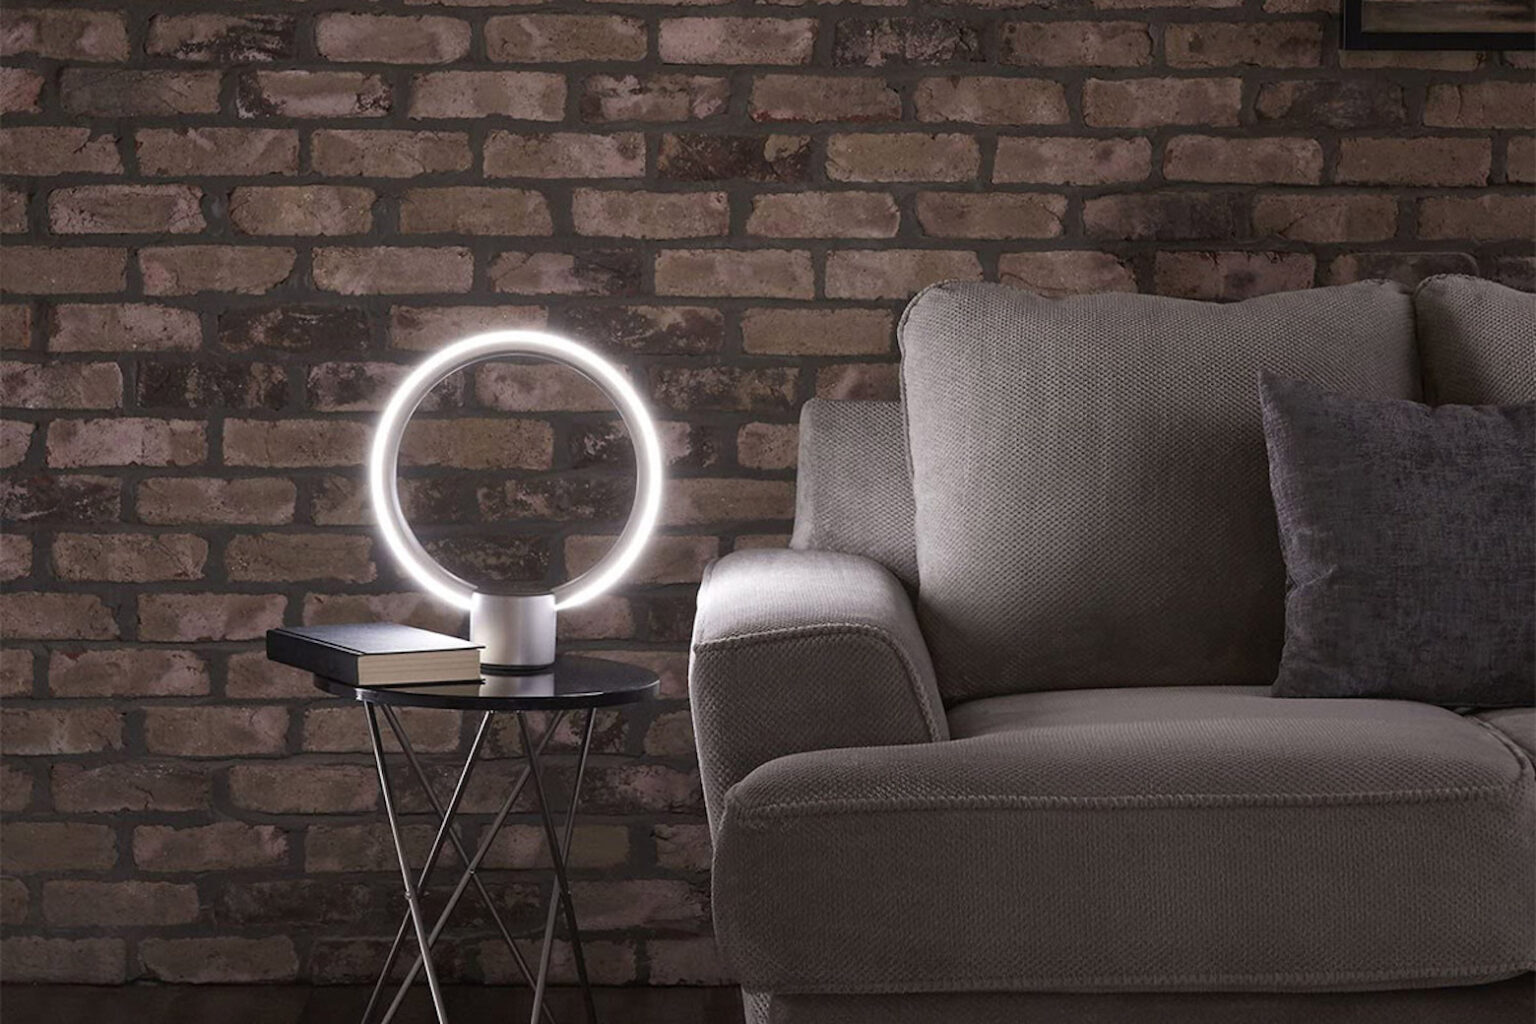 This smart light has the features and functionality of Amazon Alexa